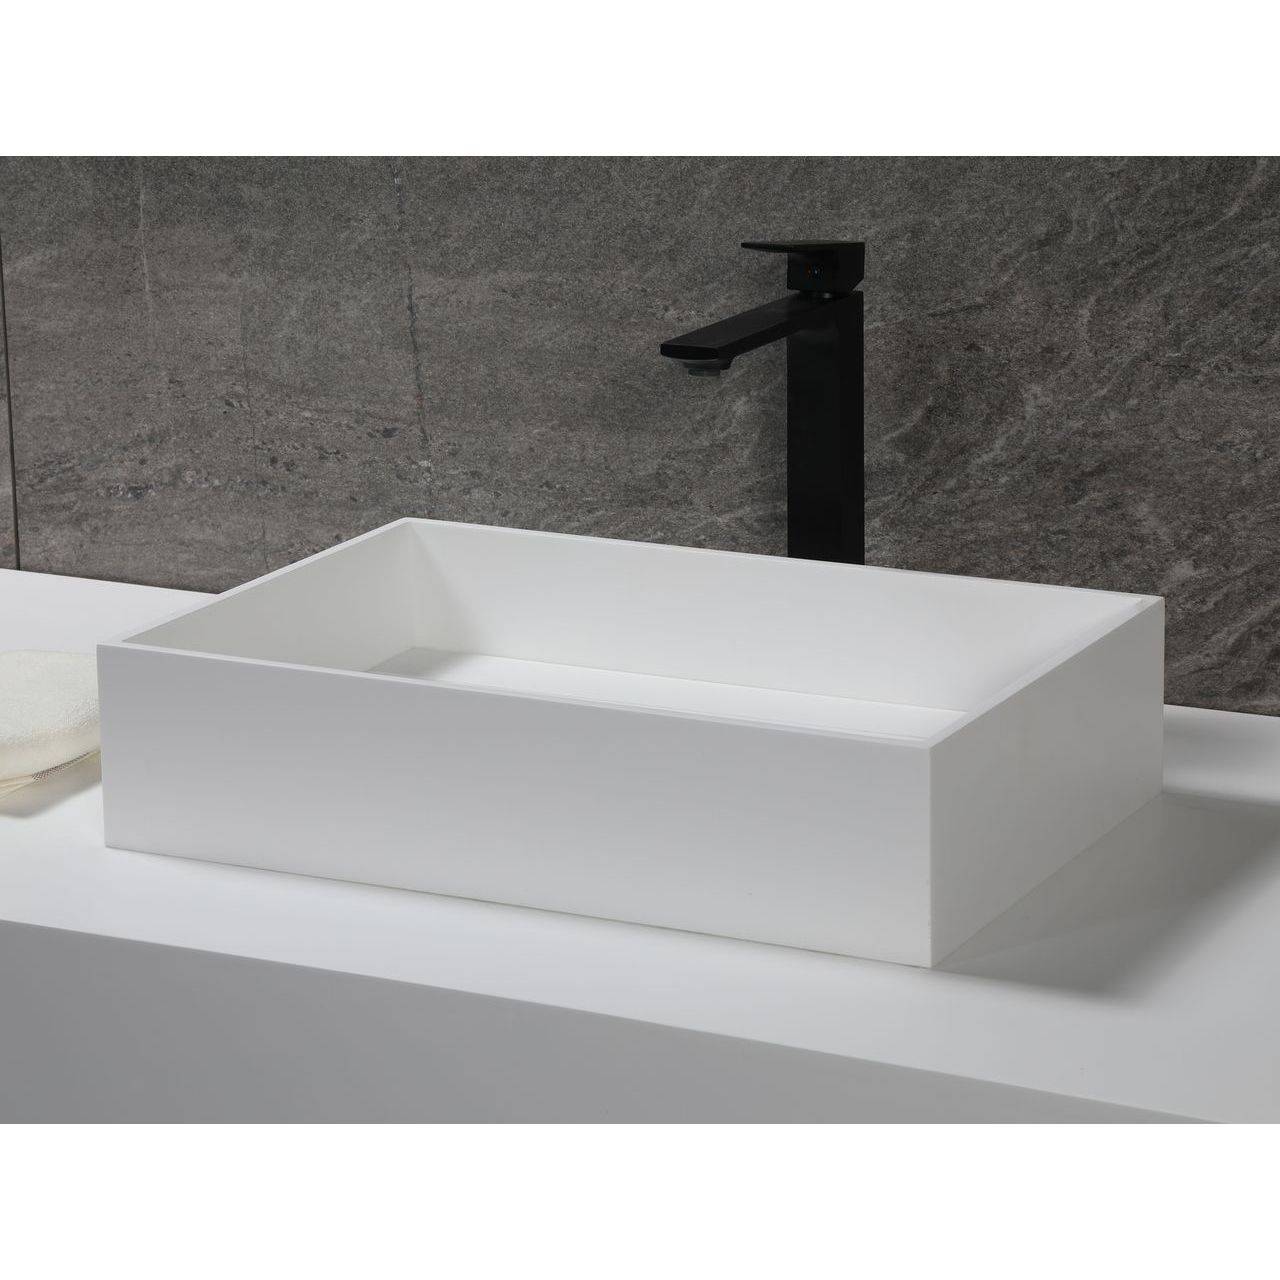 """ALFI 20""""x14"""" White Matte Solid Surface Resin Sink"""